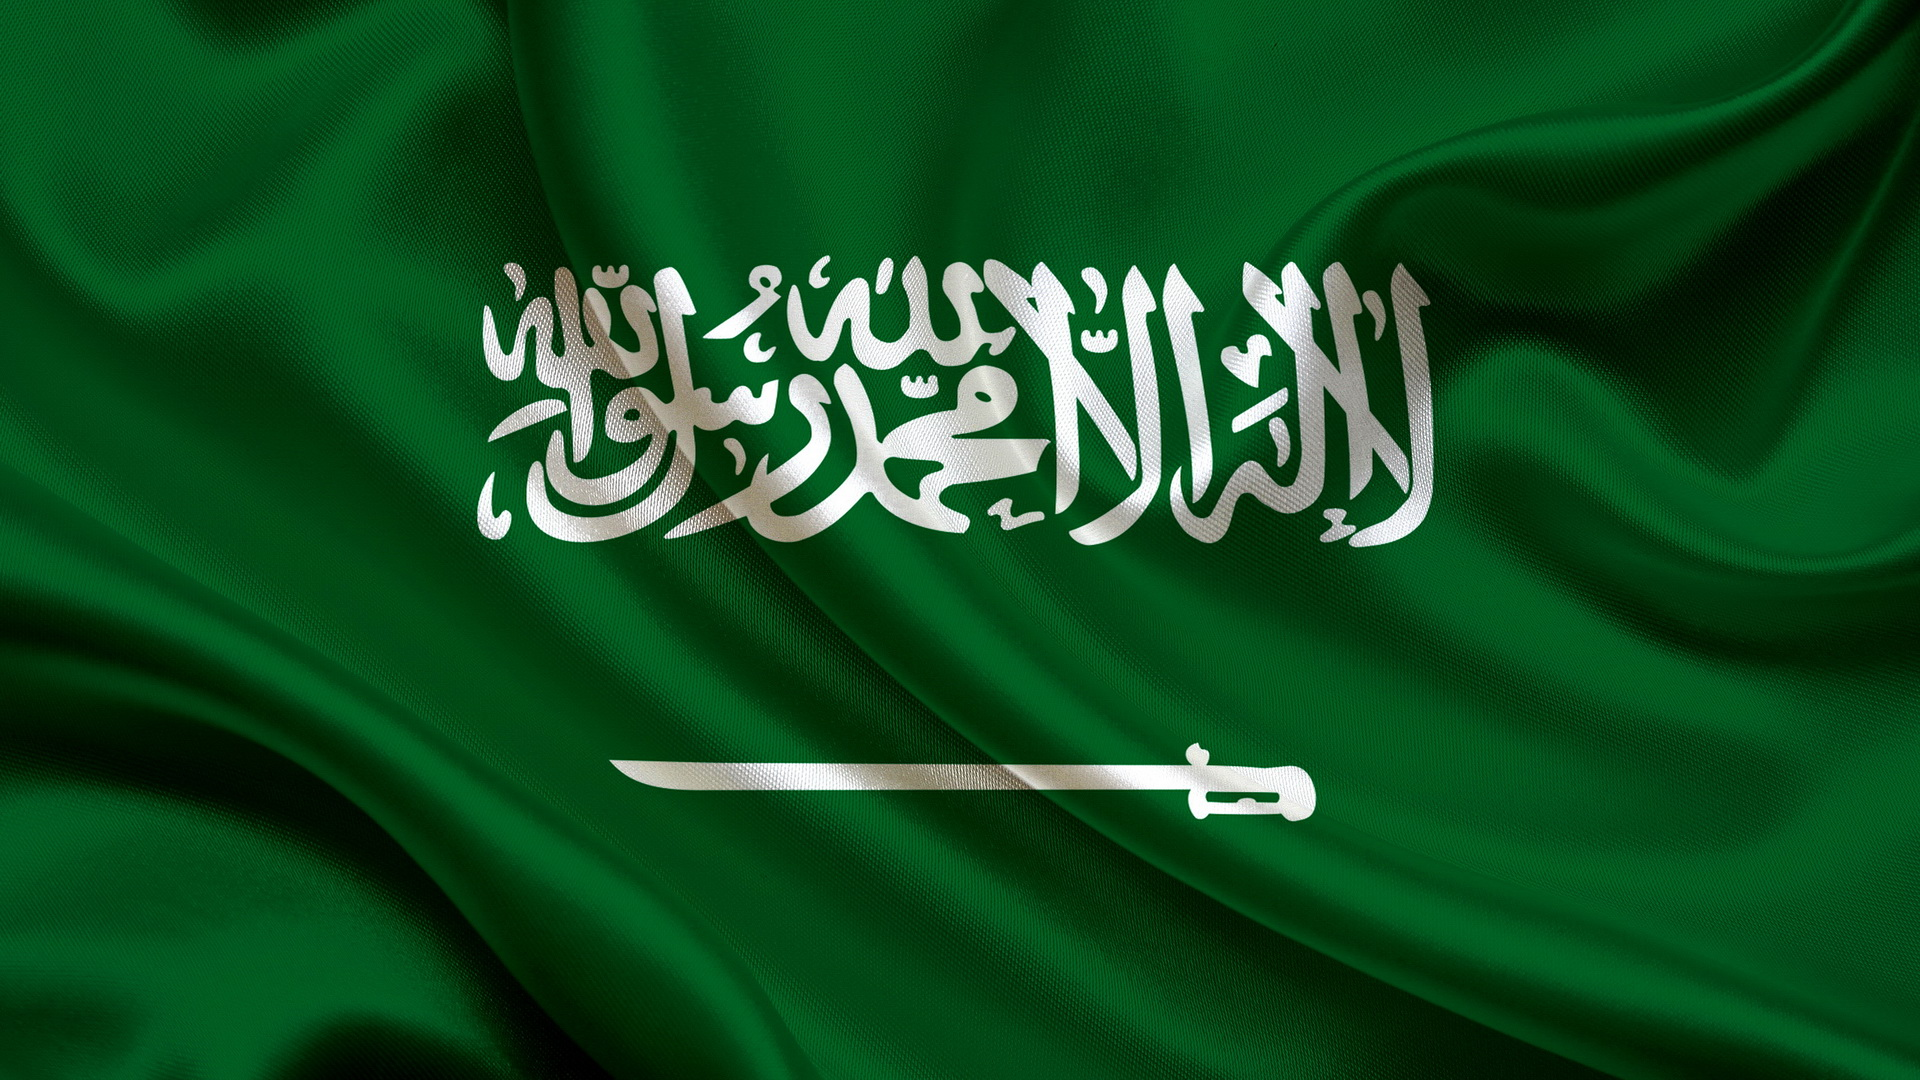 Saudi Arabia Flag hd wallpaper